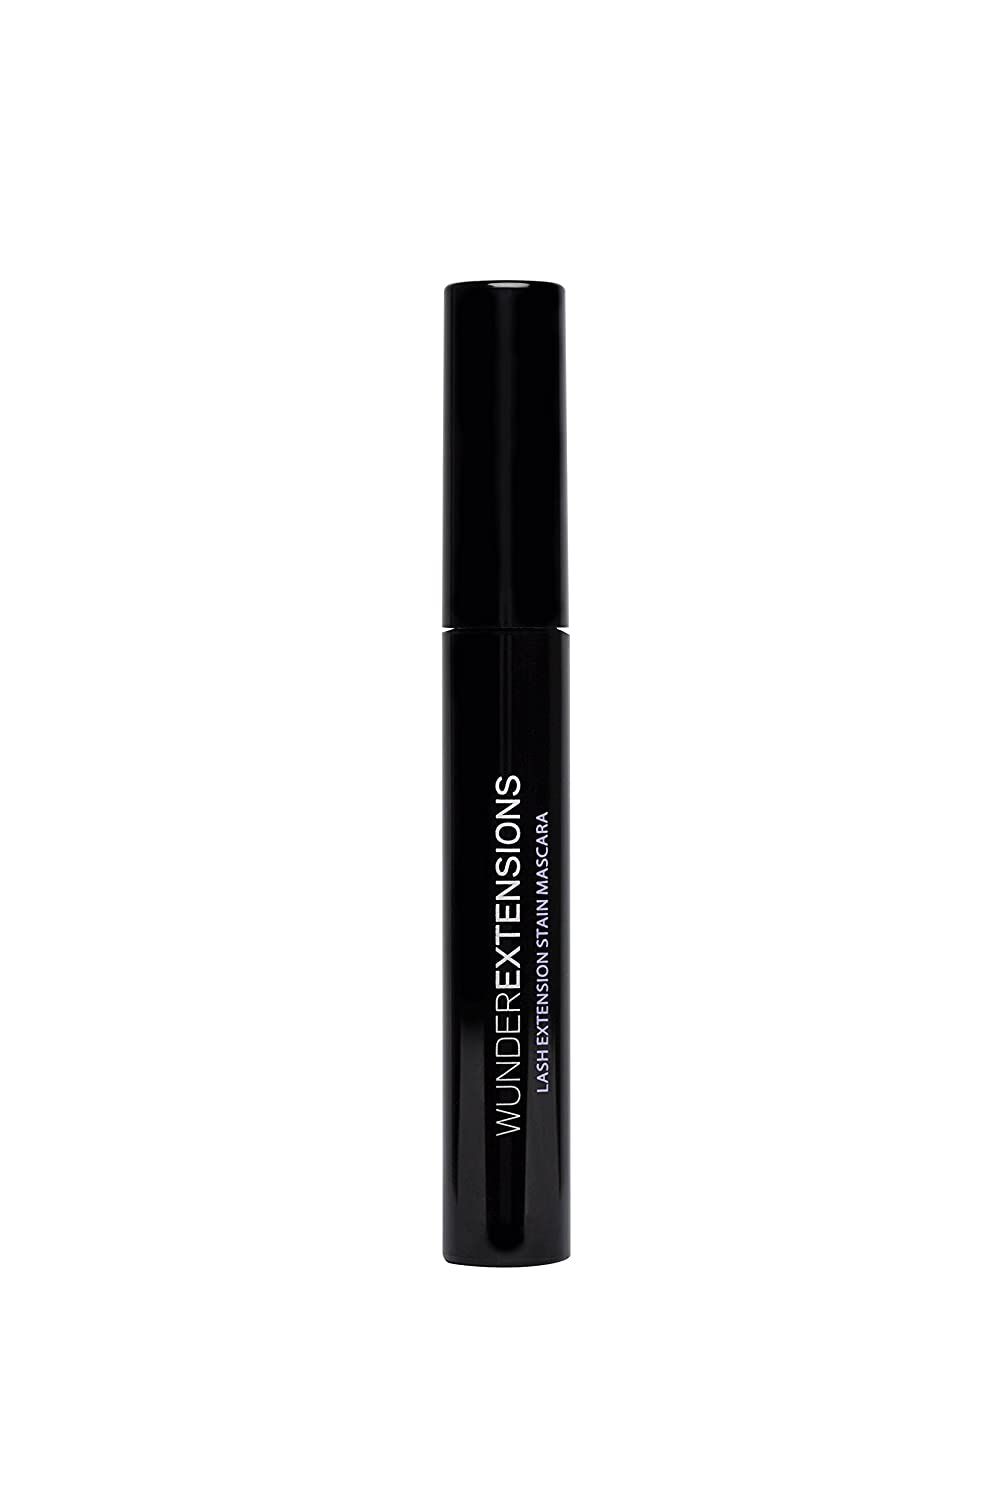 7ffe3cfd201 Amazon.com : Wunder2 Wunderextensions - Lash Extension Stain Mascara :  Beauty